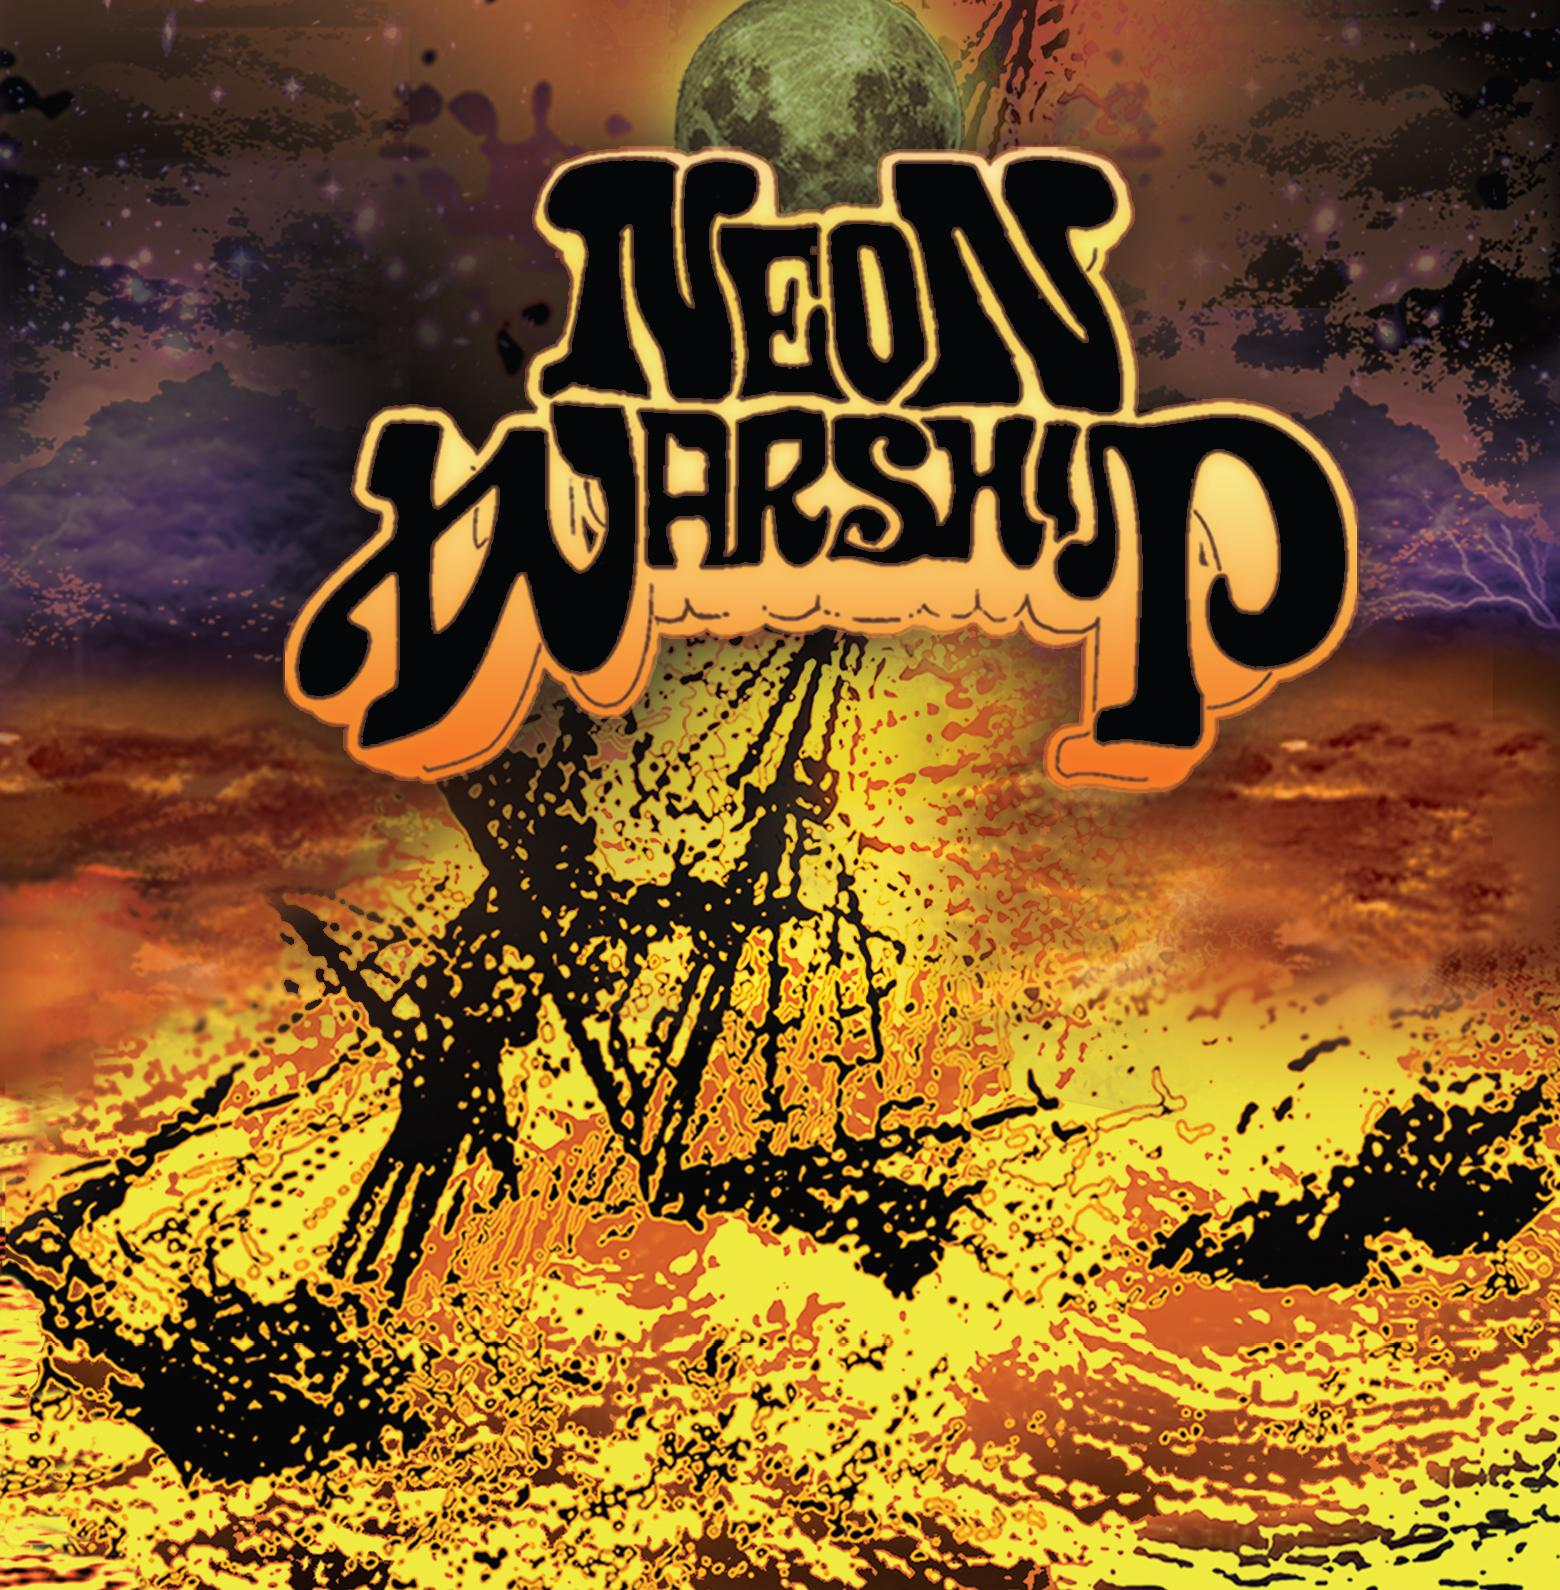 From The Horse's Mouth: Kevin Schindel (Neon Warship) on ...